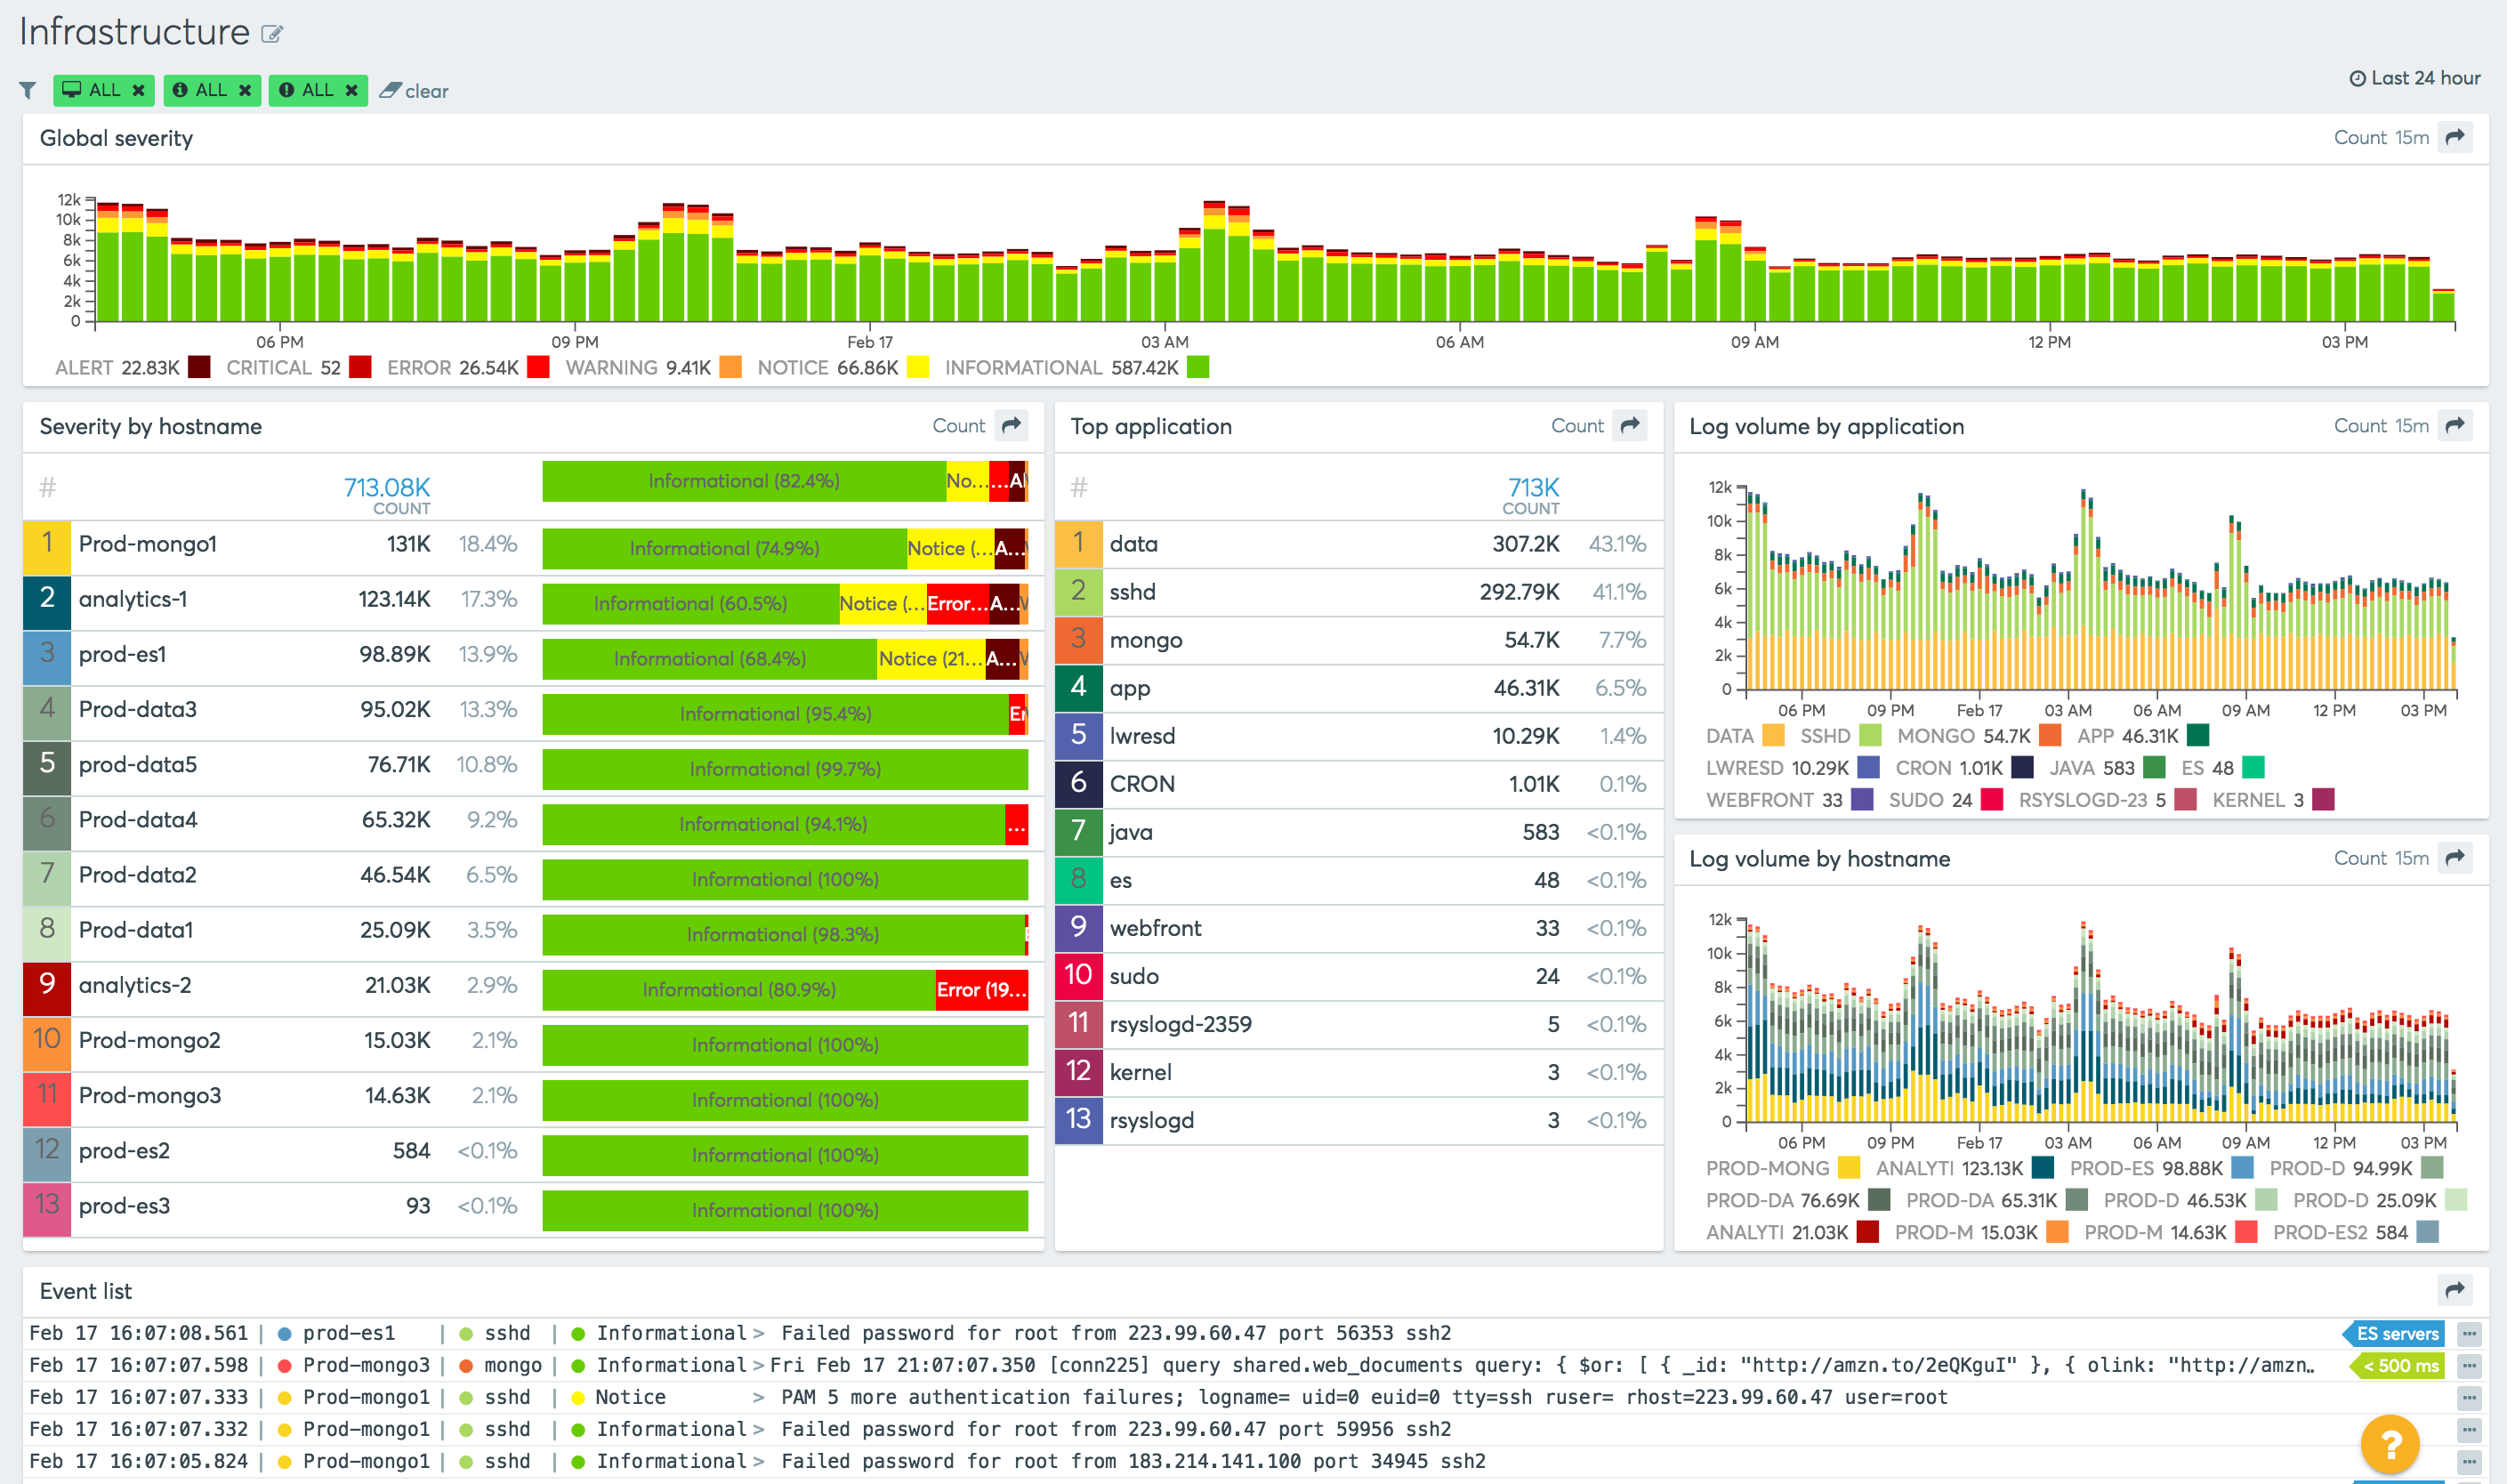 Infrastructure dashboard